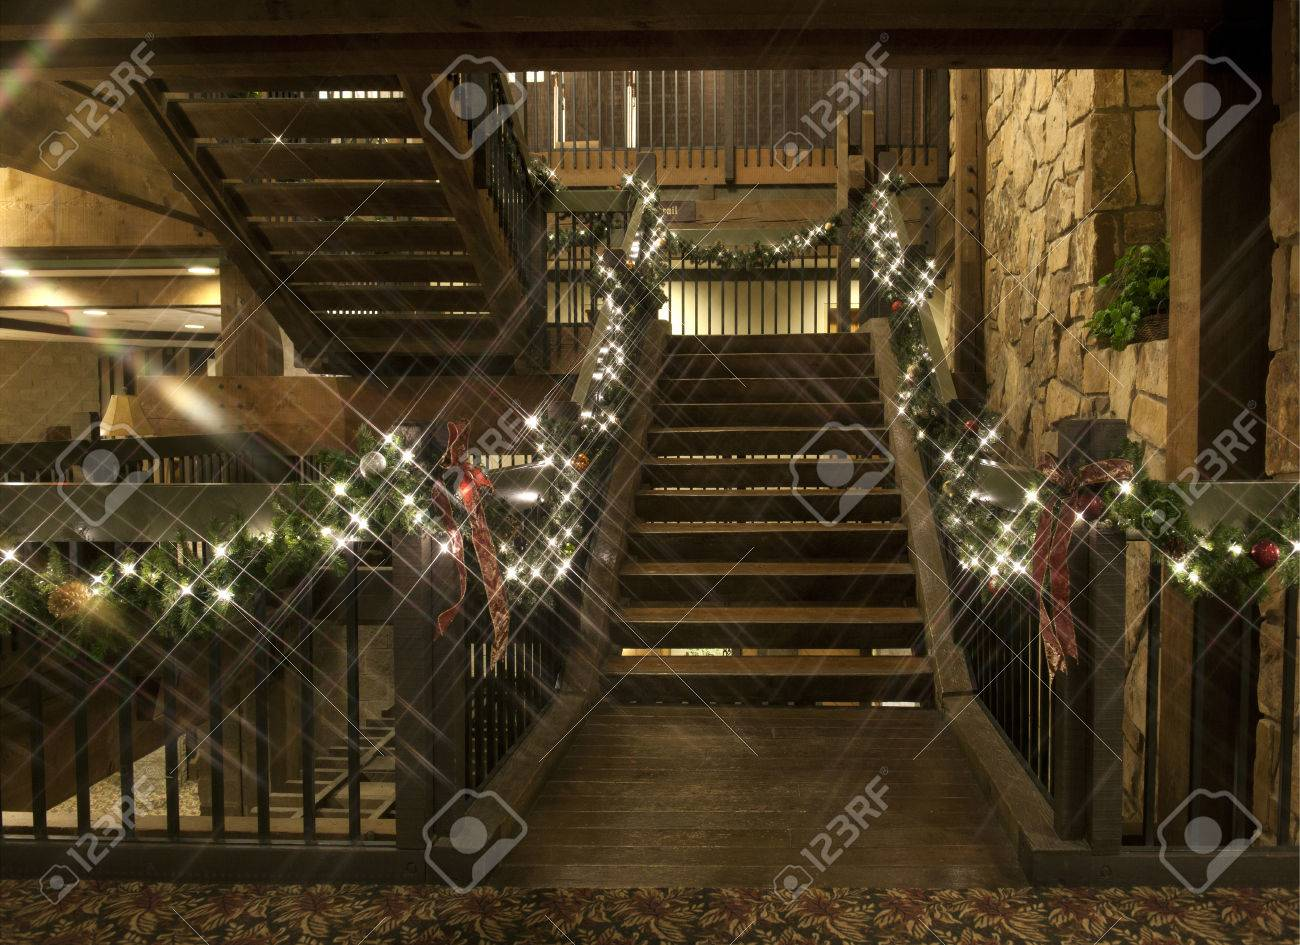 A Rustic Wooden Staircase Decorated With Christmas Garland Lights